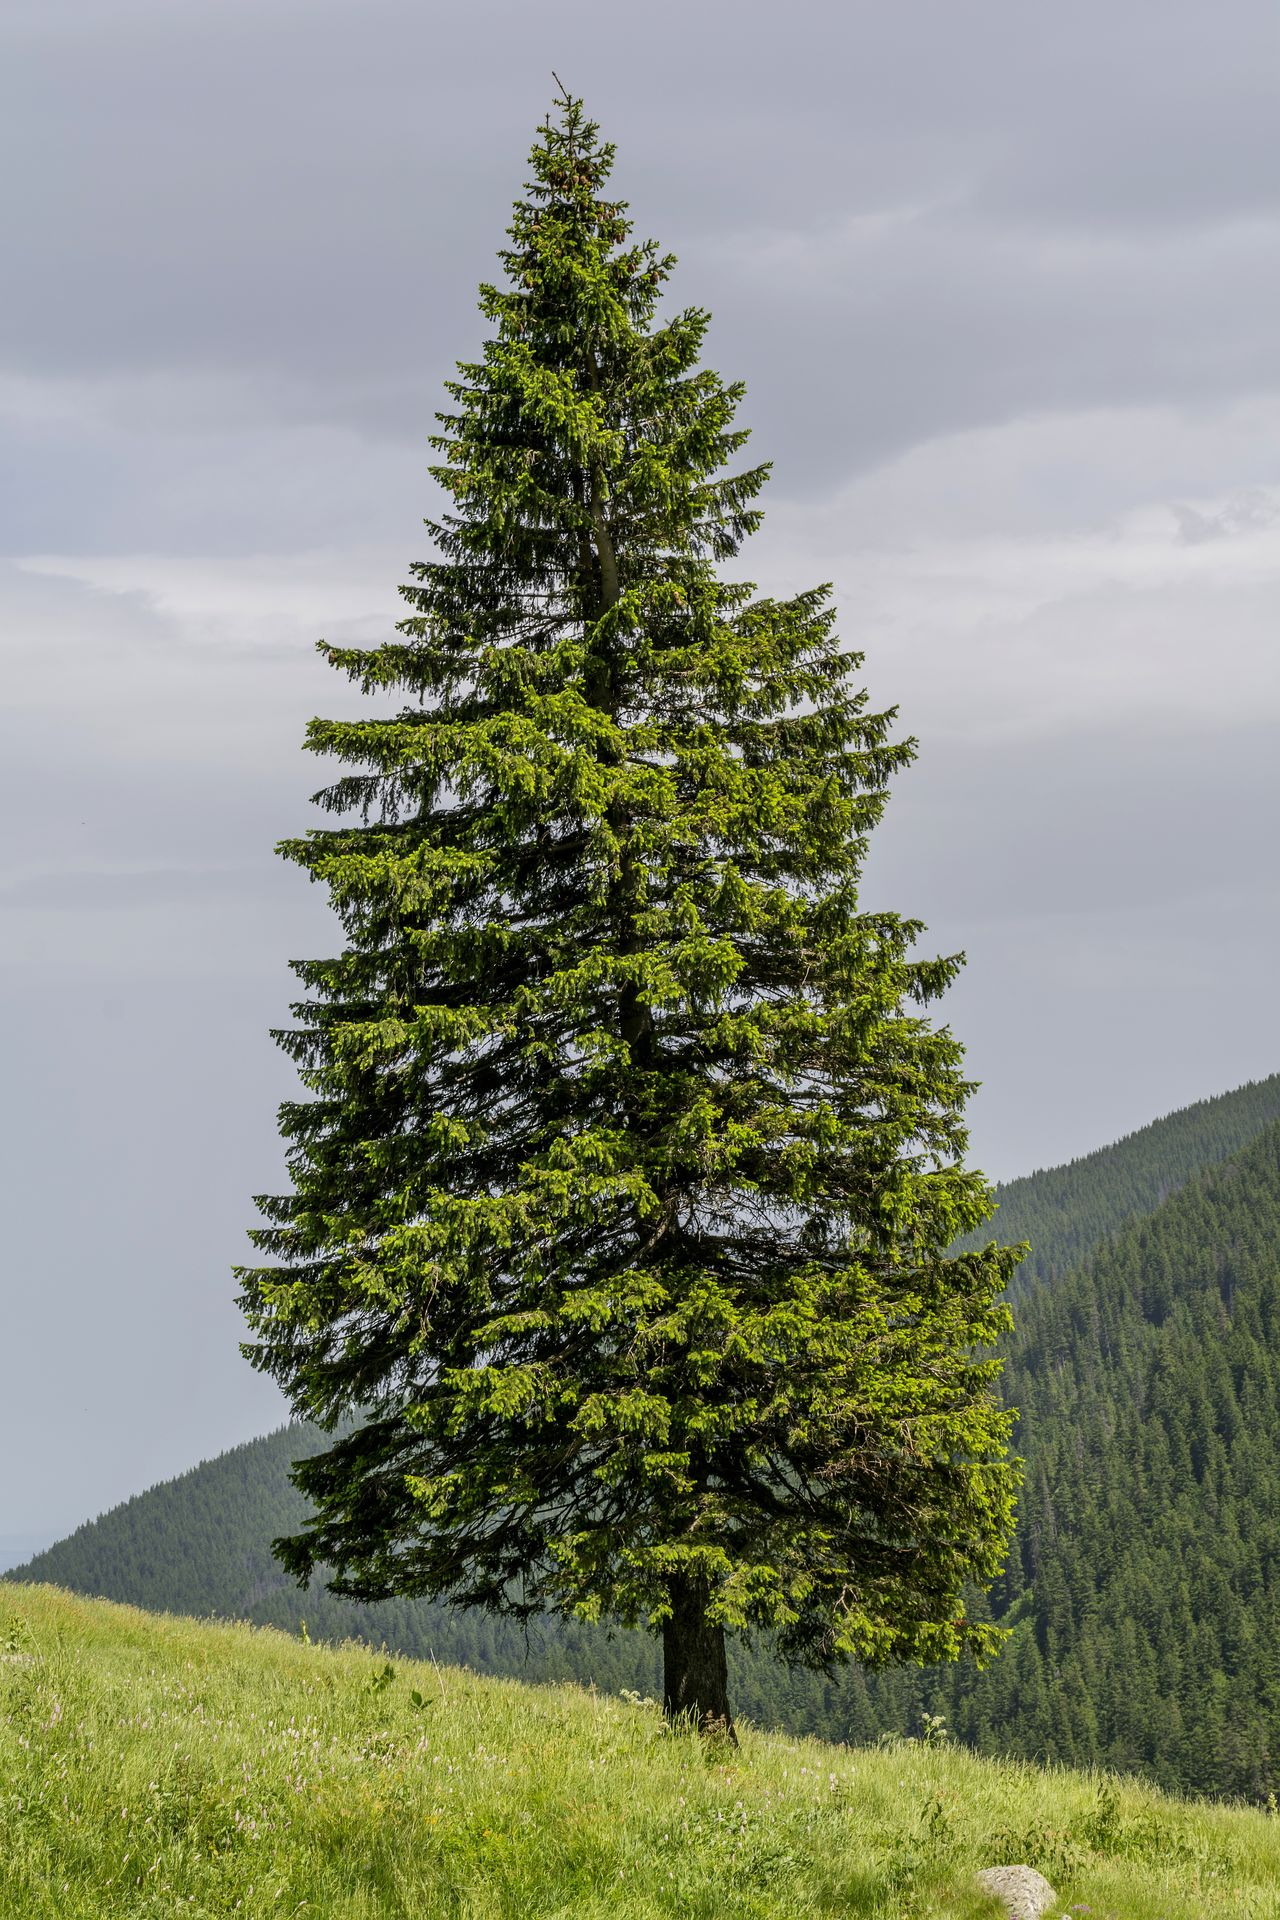 Fir Trees On The Edge Of Slope In Carpathian Mountains Beauty In Nature Biology Carpathian Mountains Cloud - Sky Coniferous Tree Environment Evergreen Field Flora Freshair Grass Green Color Growth Highlands Landscape Nature Outdoors Pinetrees🌲 Scenics Slope Tranquil Scene Virgin Nature Wildlife Wood